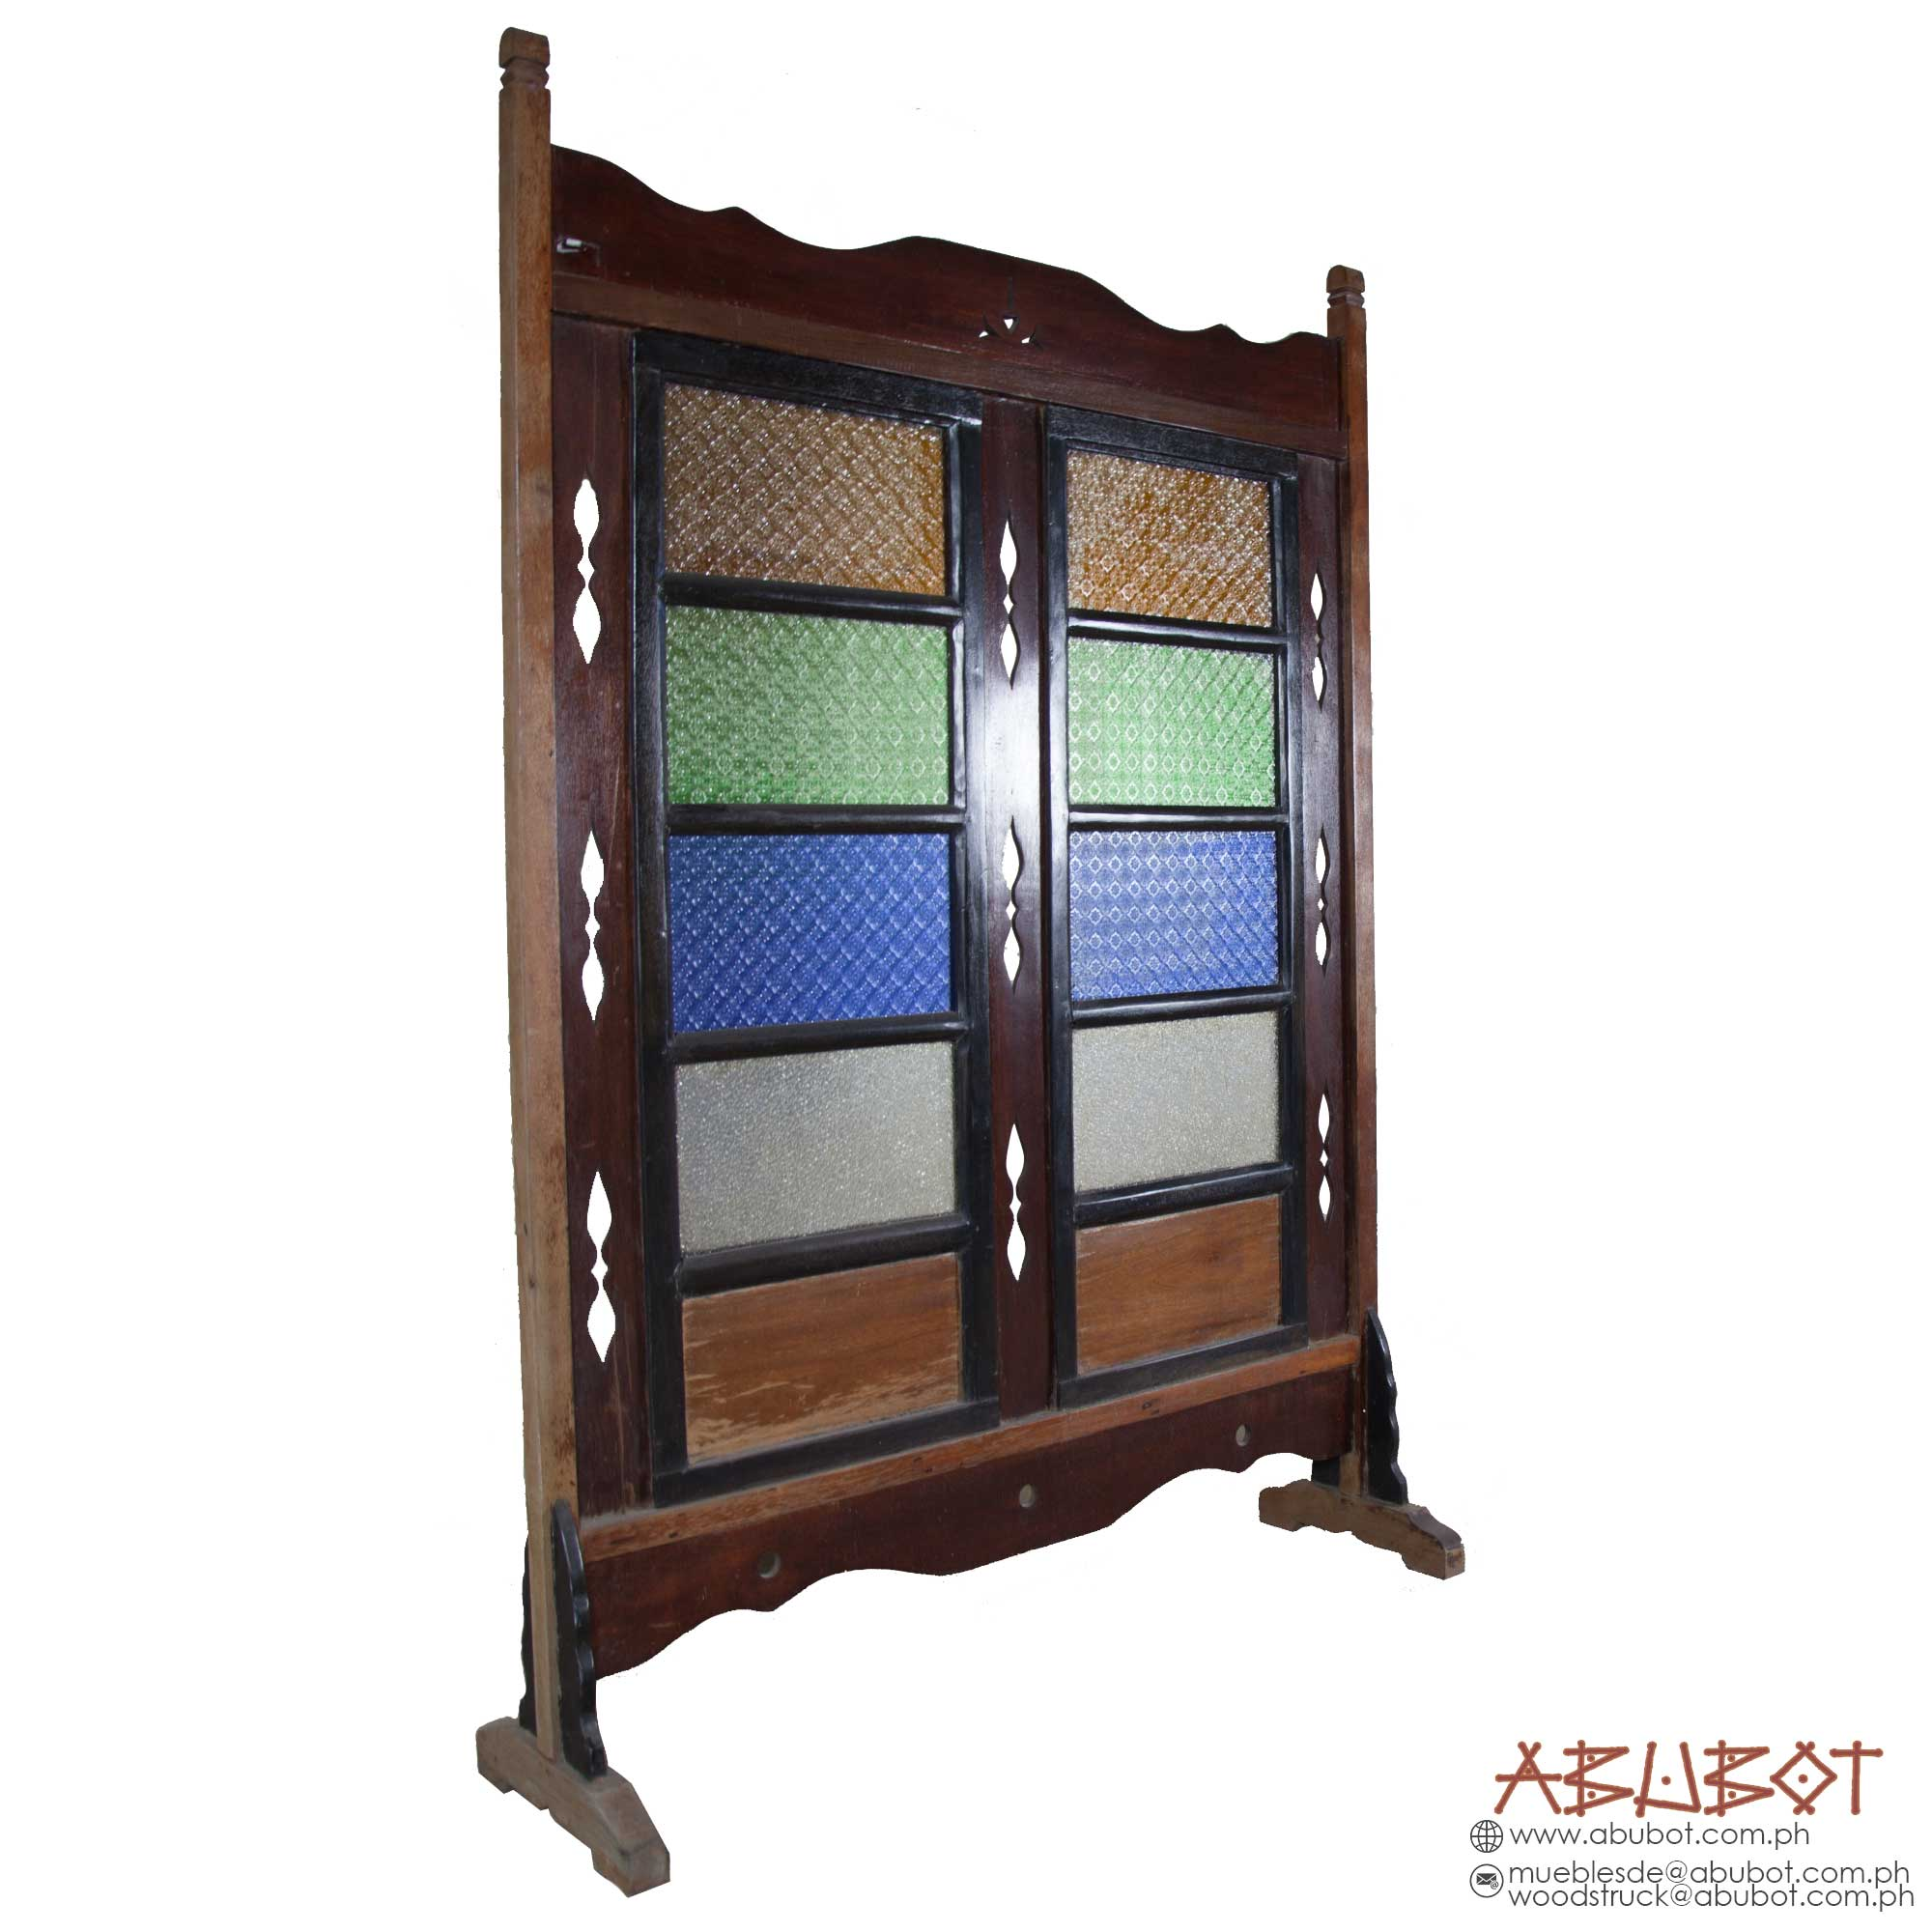 DIVIDER DOUBLE PANEL, STAIN GLASS